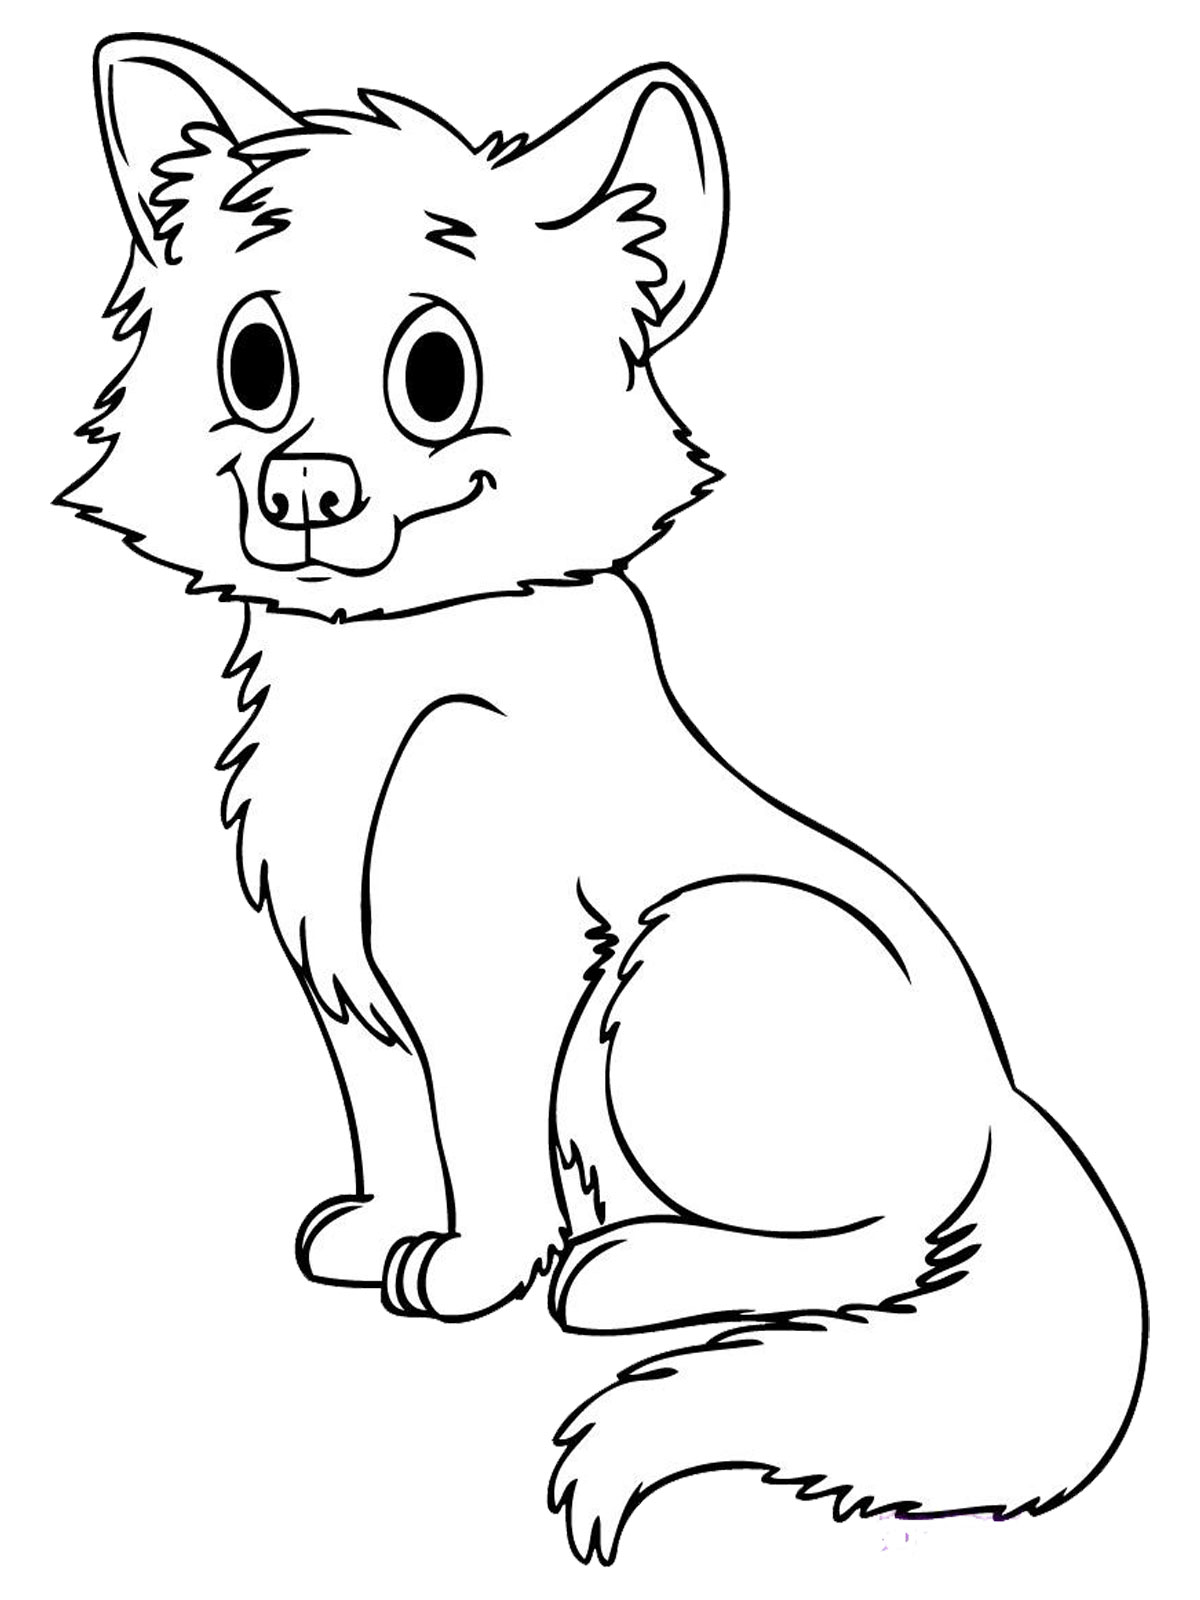 Coloring pages of wolves - Wolves Coloring Sheets